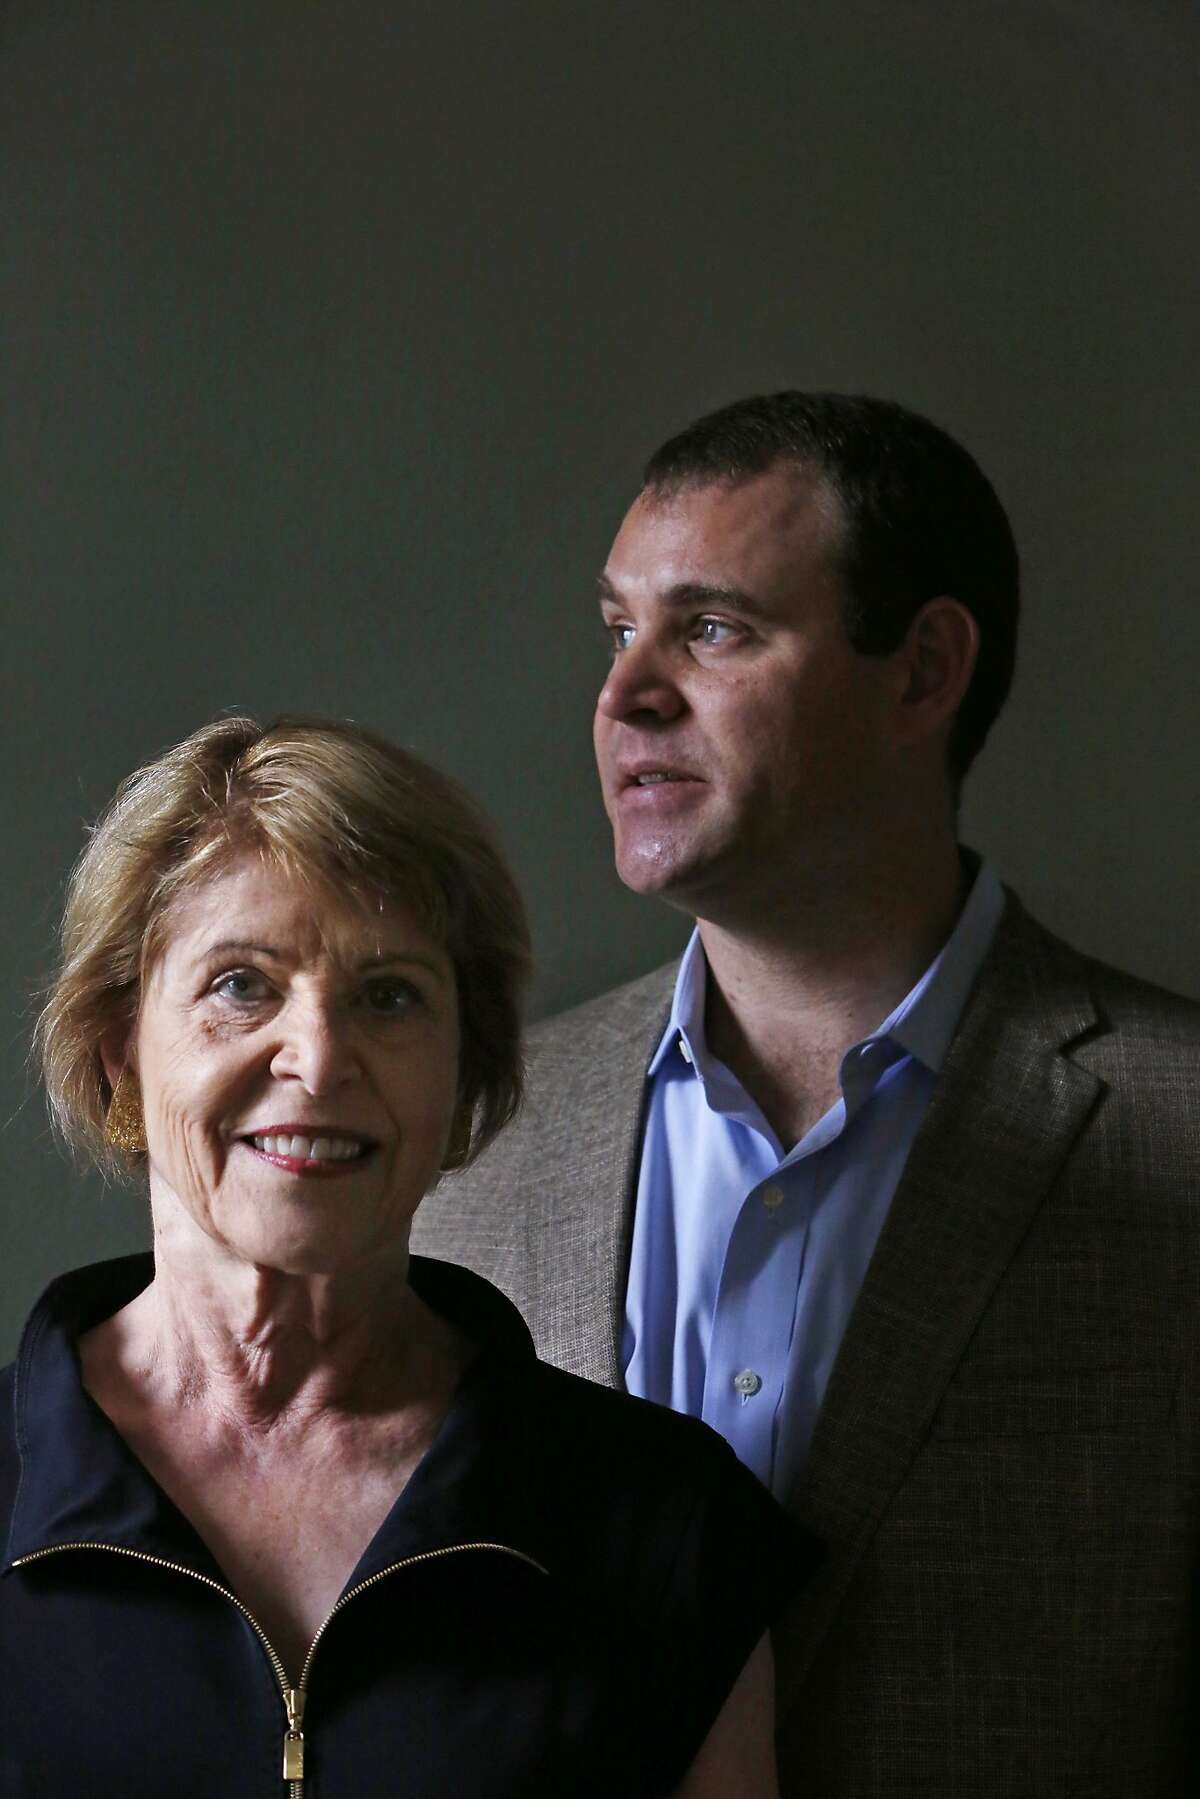 Dagmar Dolby (l to r), wife of late Ray Dolby, and David Dolby, son of the late Ray Dolby, are seen at California Pacific Medical Center's Brain Health Center on Monday, September 15, 2014 in San Francisco, Calif. The family of Ray Dolby, the founder of S.F. audio giant Dolby Labs who died after a battle with Alzheimer's in 2013, are donating $21 million to the California Pacific Medical Center.